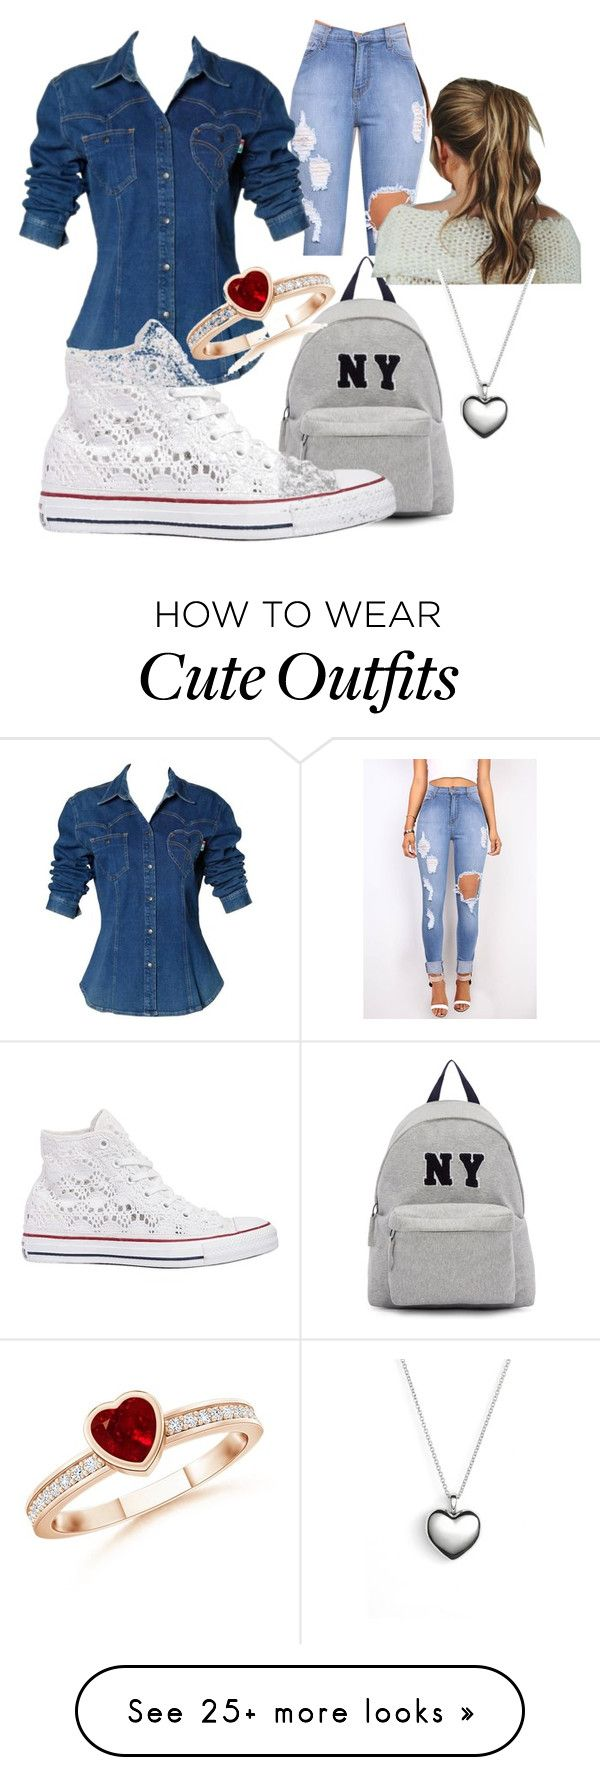 """""""A Cool School Outfit"""" by teddymdbear on Polyvore featuring Moschino, Joshua's, Converse, Pandora, women's clothing, women, female, woman, mis…"""